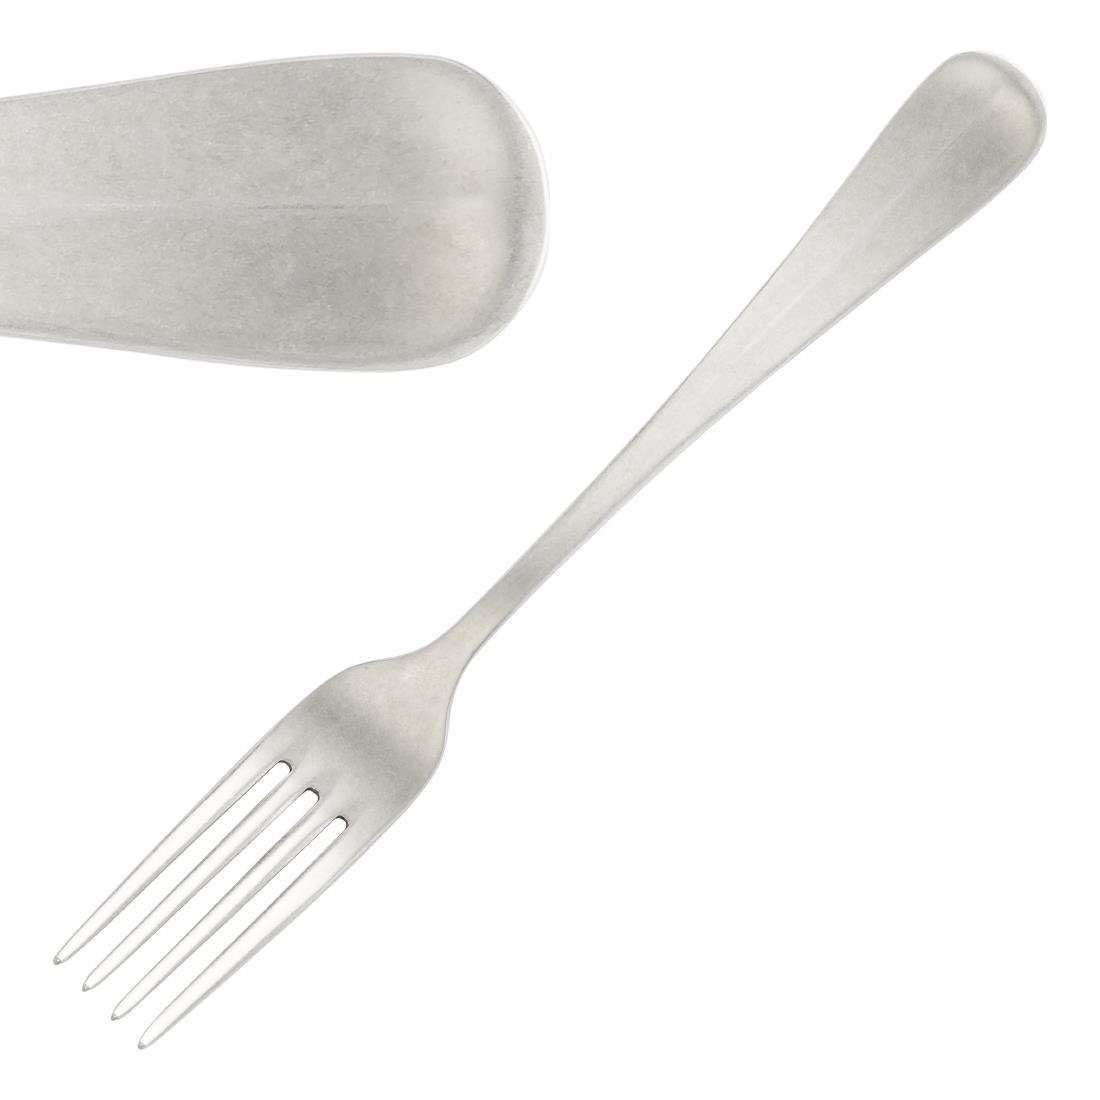 Image of Pintinox Baguette Stonewashed Dessert Fork (Pack of 12) Pack of 12